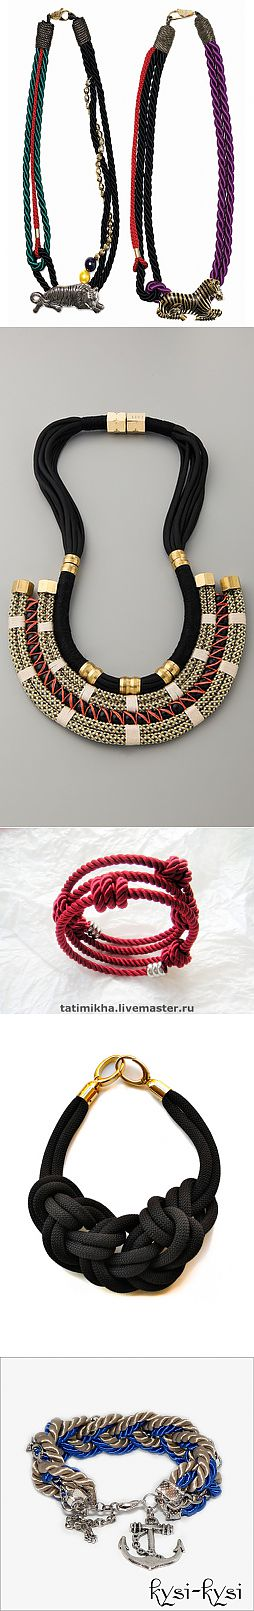 Jewelry from cords - ideas and excellent master classes.